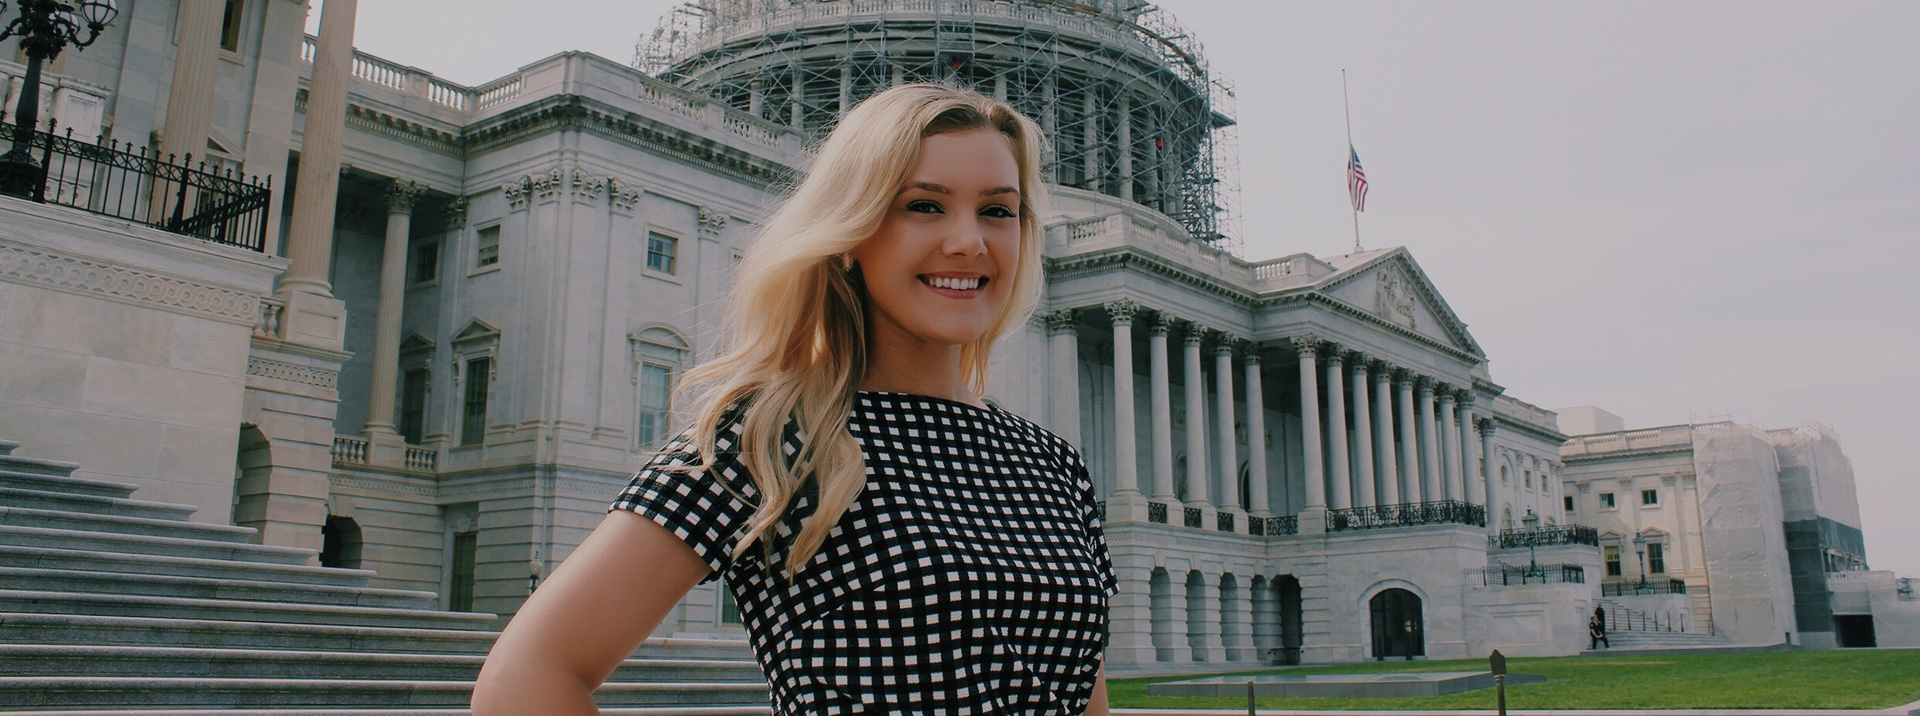 Intern standing in front of the US Capitol building